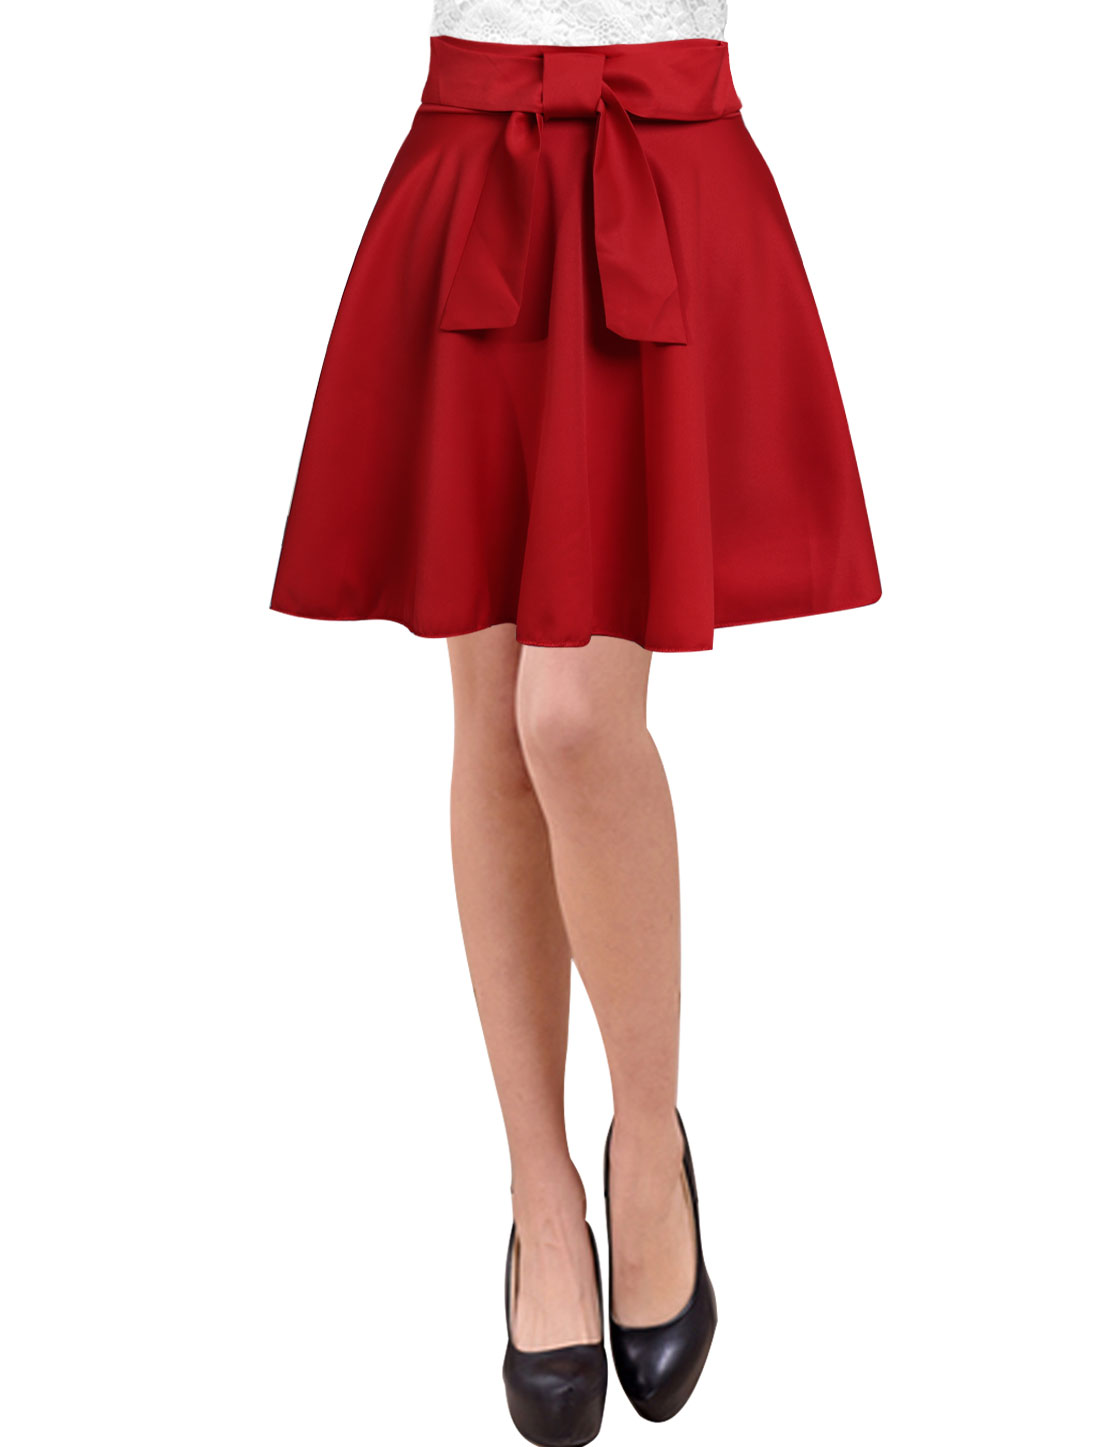 Ladies Bowknot Decor Unlined Hidden Zipper Mini Skirts Red M